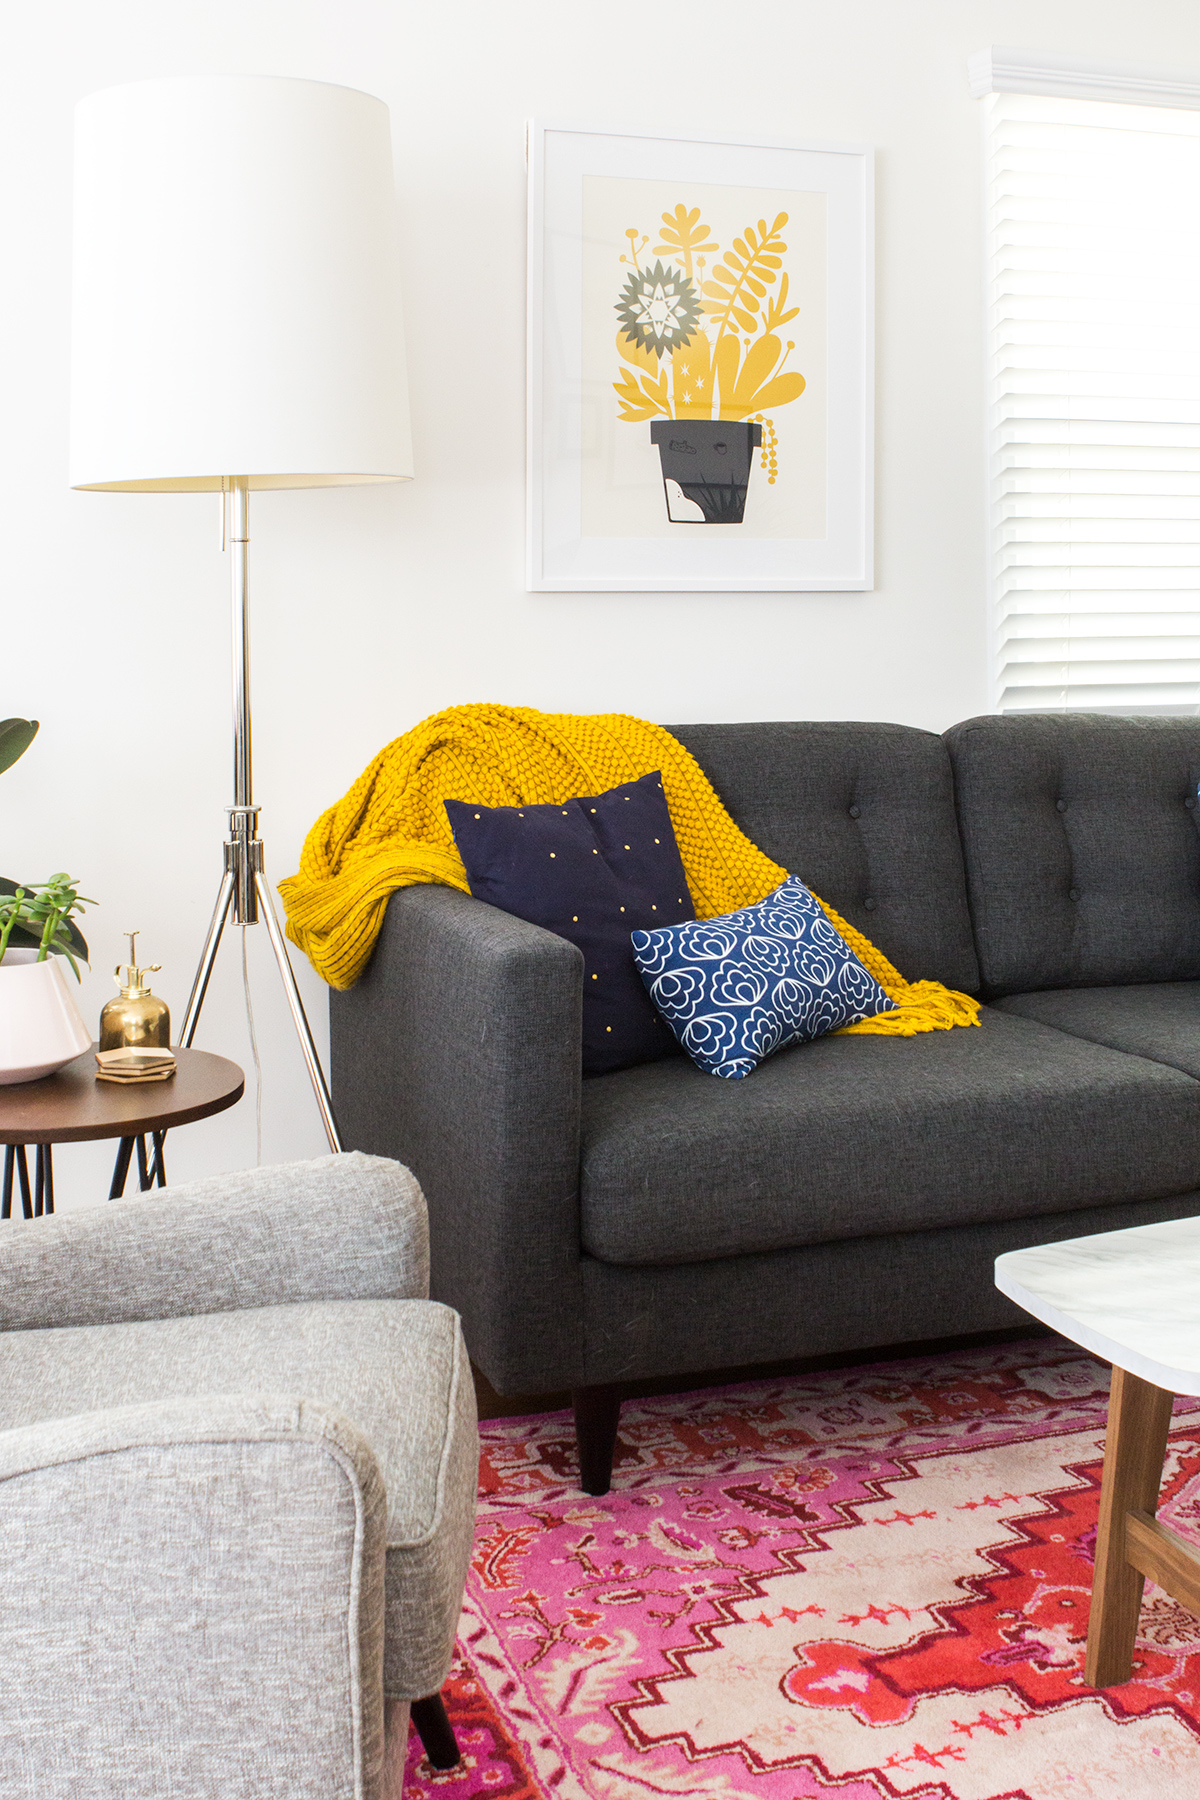 Take a tour of blogger Sarah Hearts' Venice, California rental bungalow.